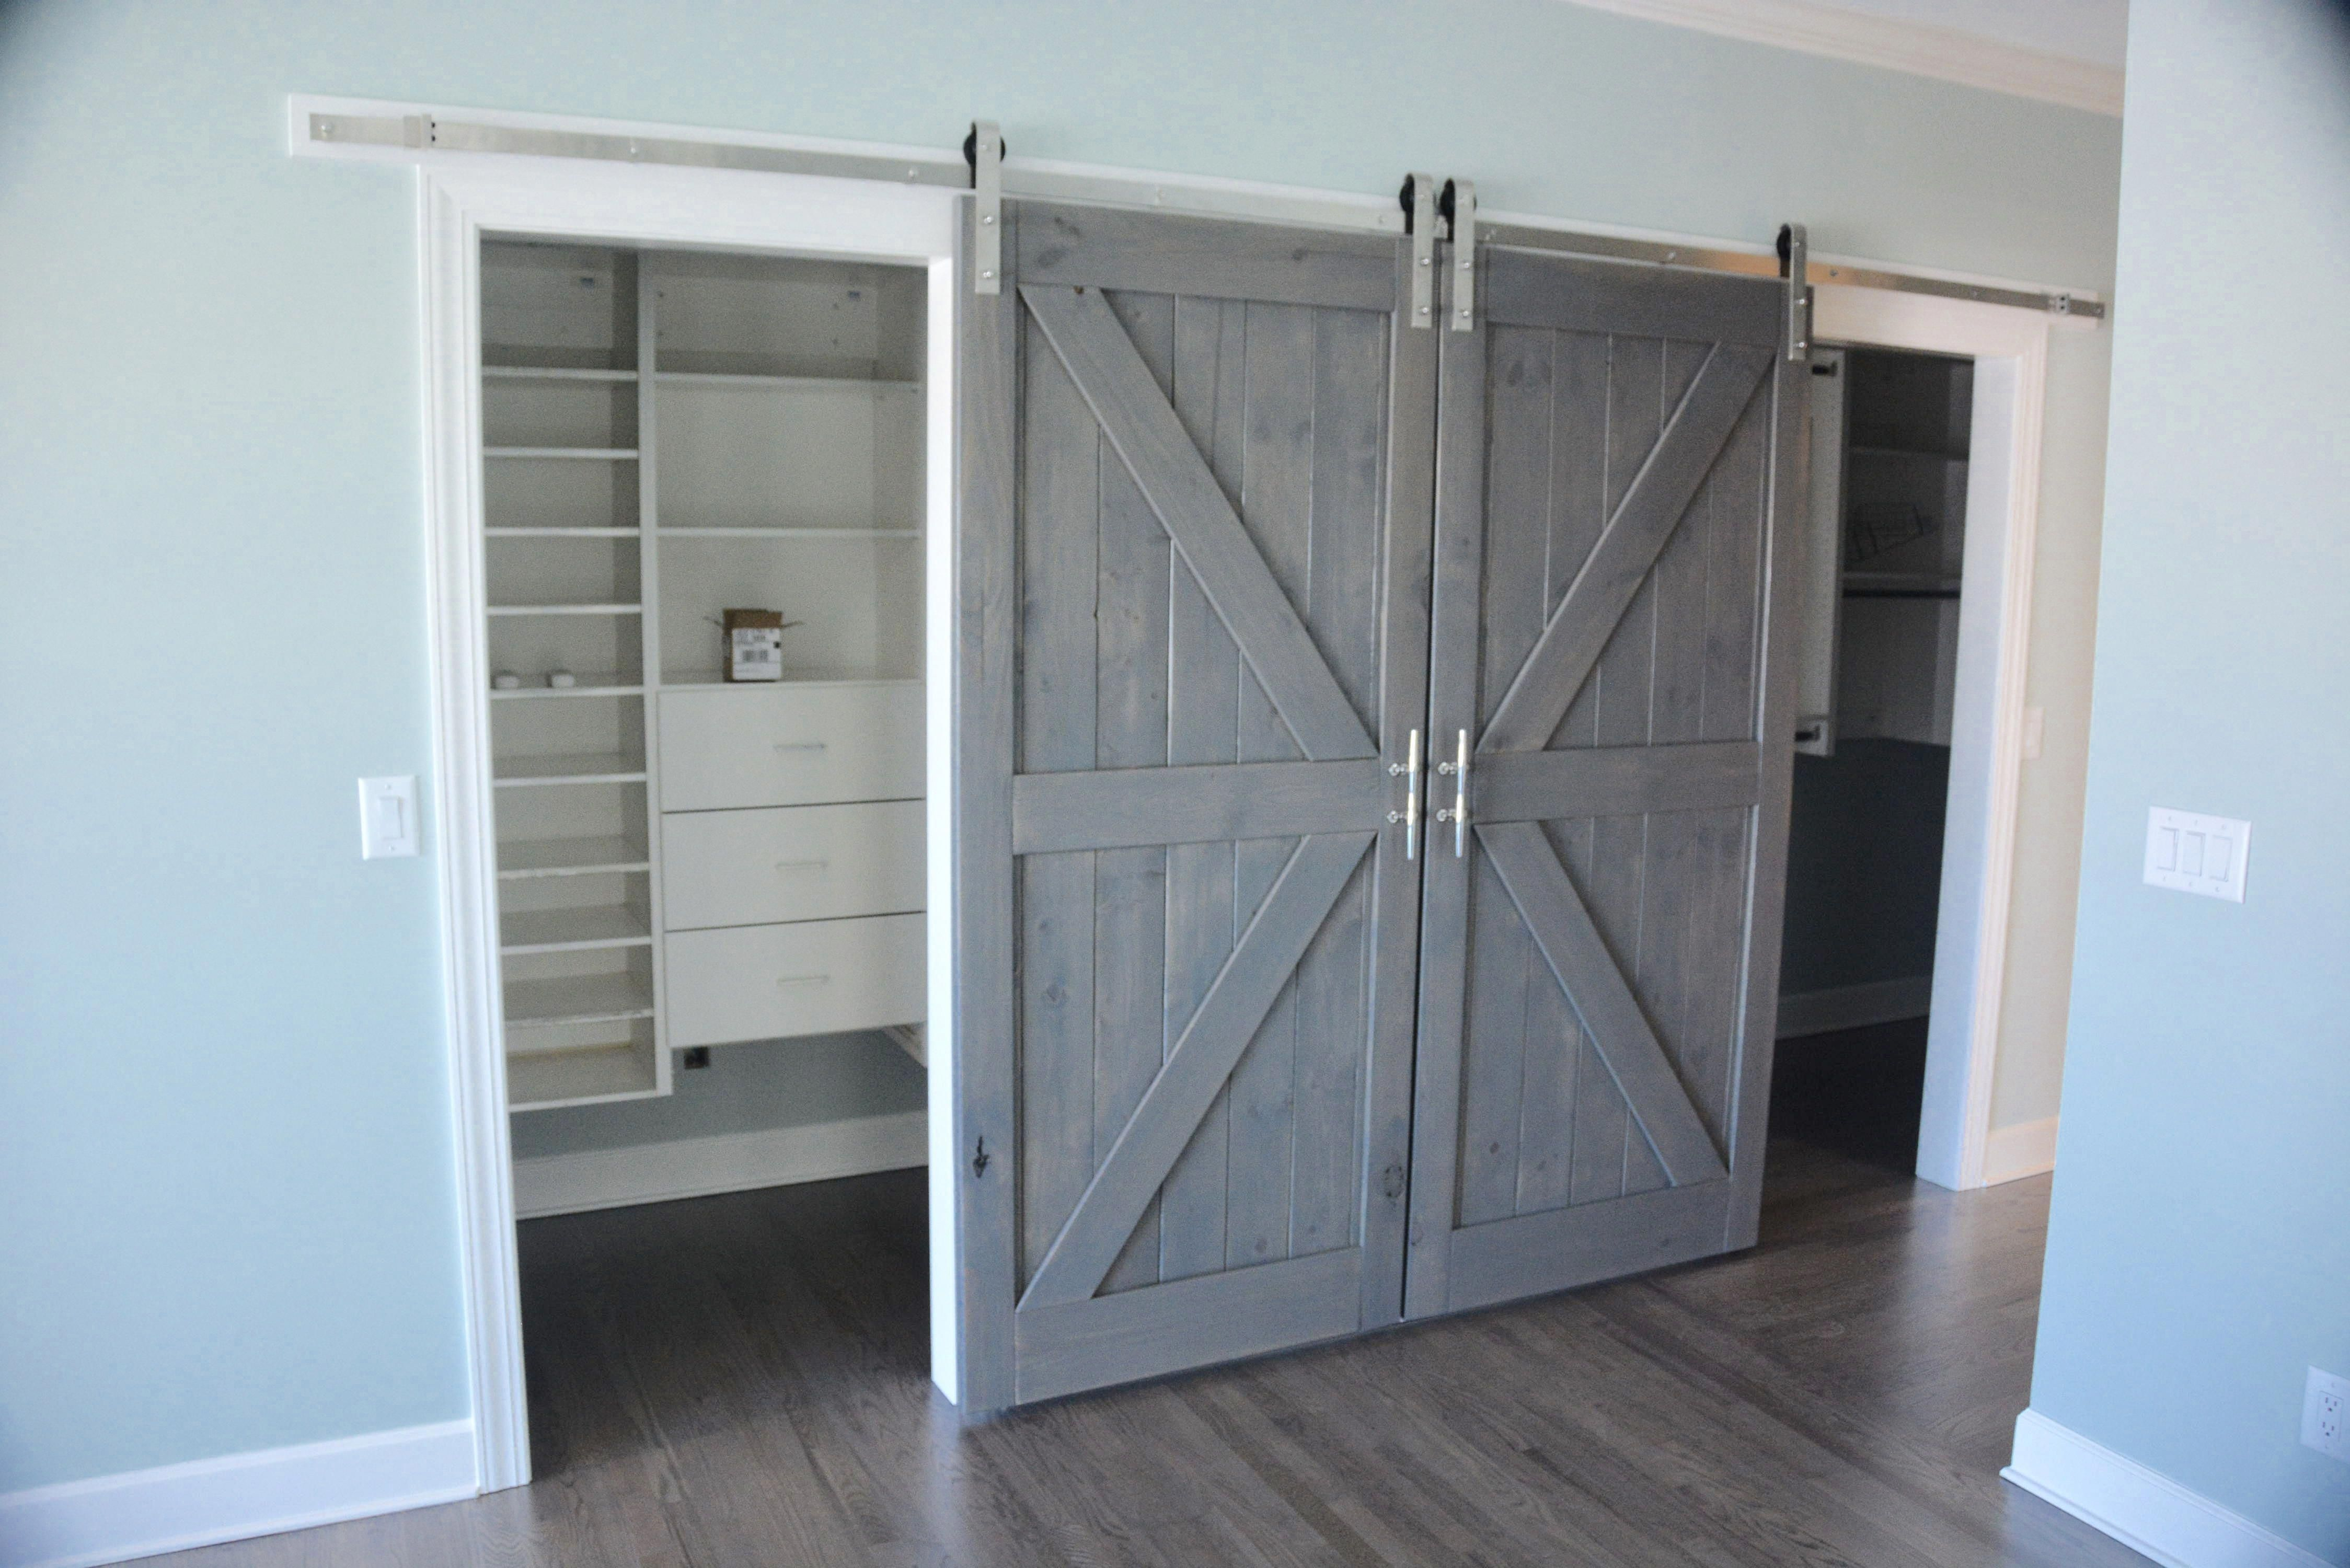 British Brace Sliding Barn Doors With Grey Stain The Hardware Was Stainless Steel With Boat Cleats As Handles Built In C Indoor Barn Doors Interior Barn Doors